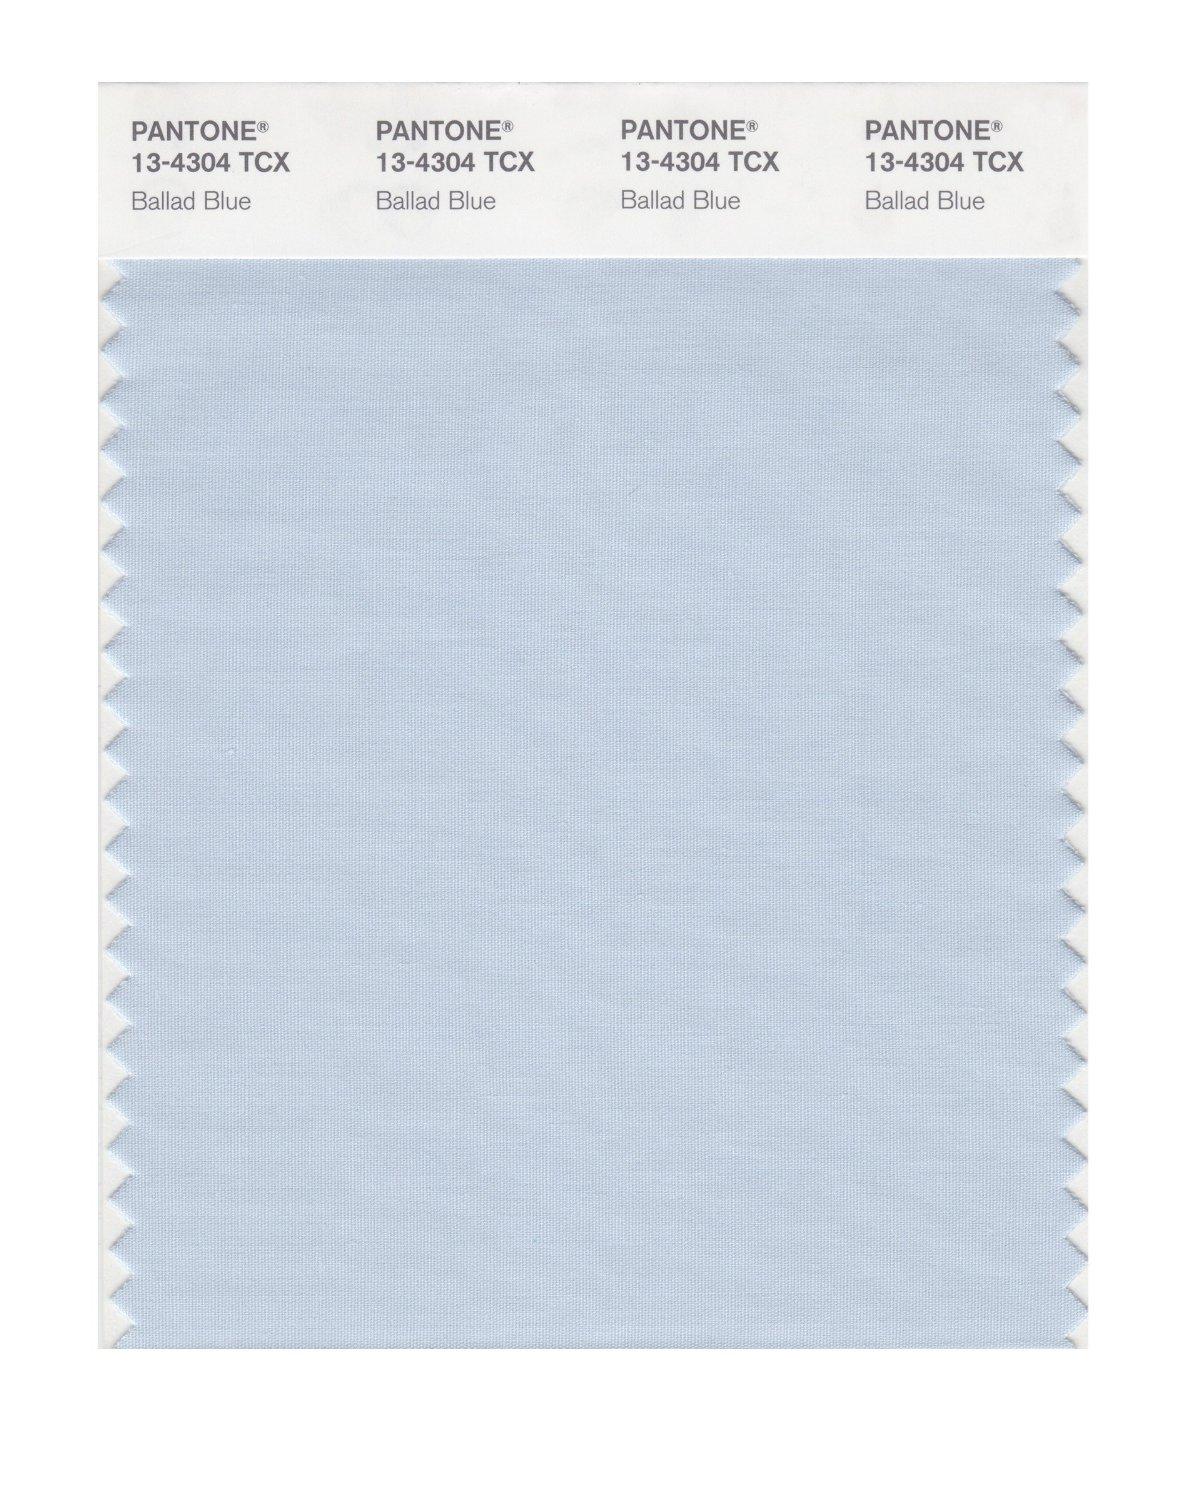 Pantone Smart Swatch 13-4304 Ballad Blue